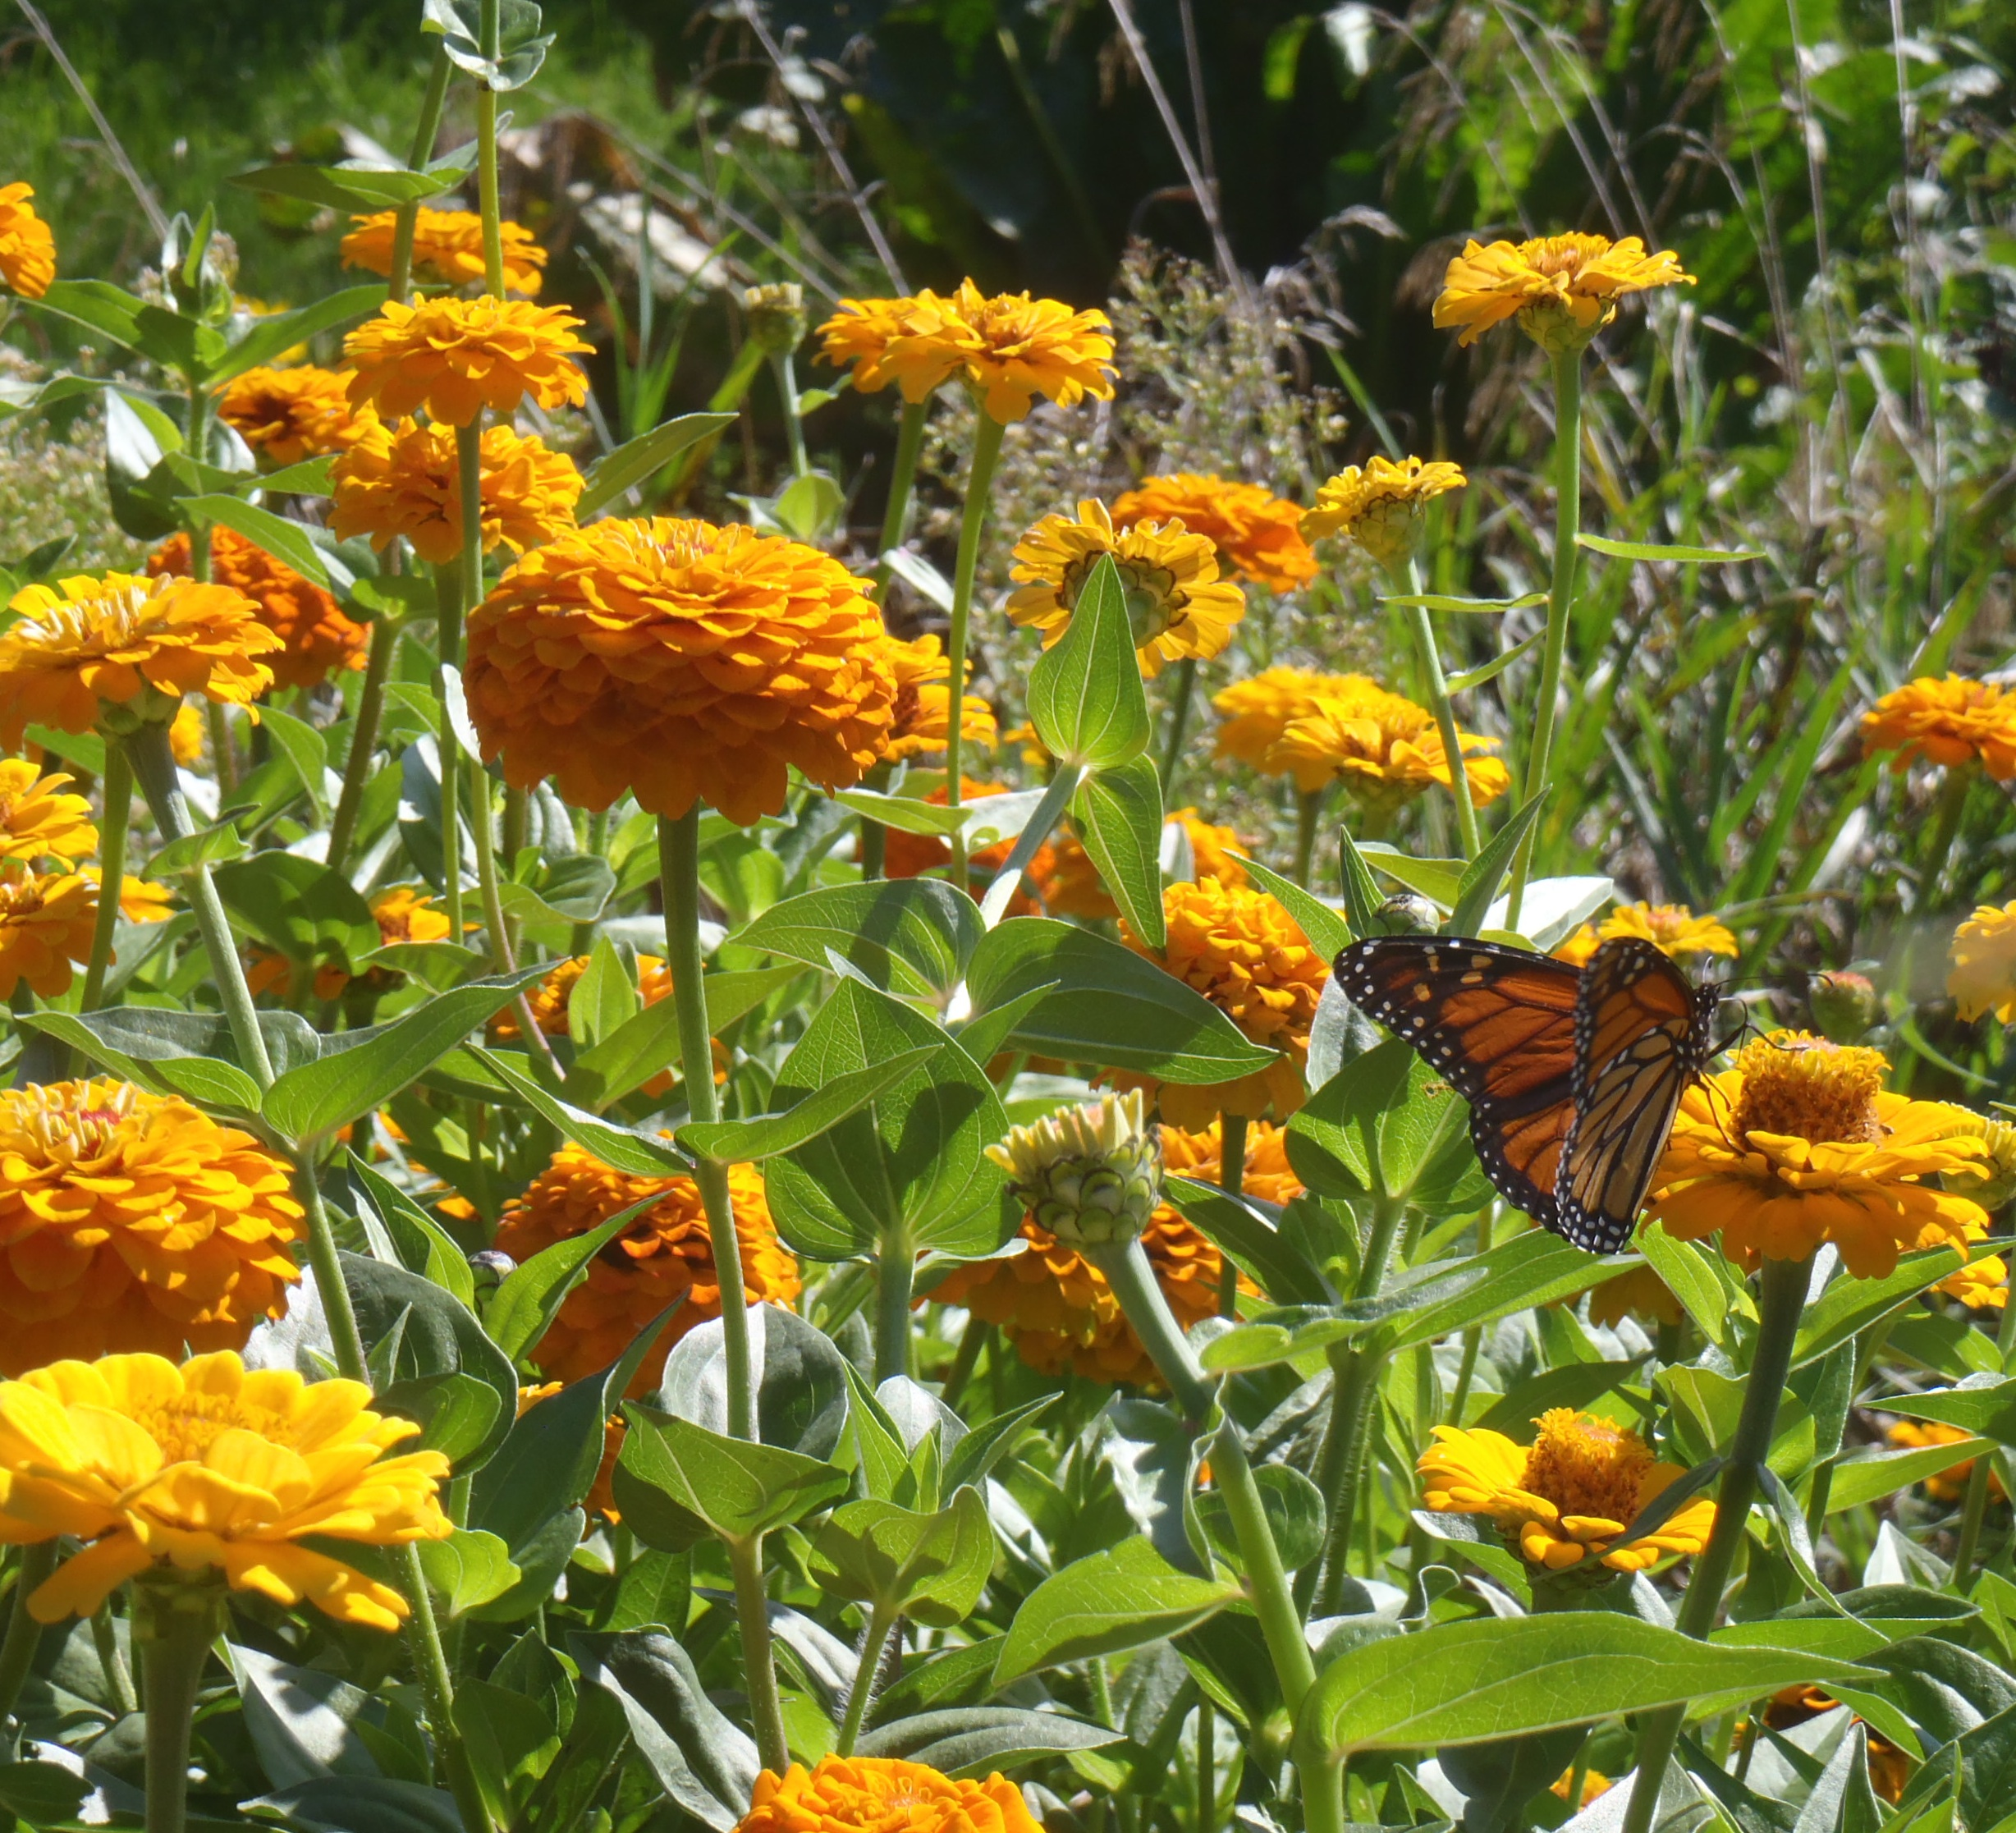 Bees and butterflies love zinnias for its pollen. In the language of flowers zinnias represent friendship and exuberence. Zinnias show us the way to remain beautiful and joyous through rain, wind, chilly nights and infiltrations of insects and human equivalents. Photo by Erin Schneider